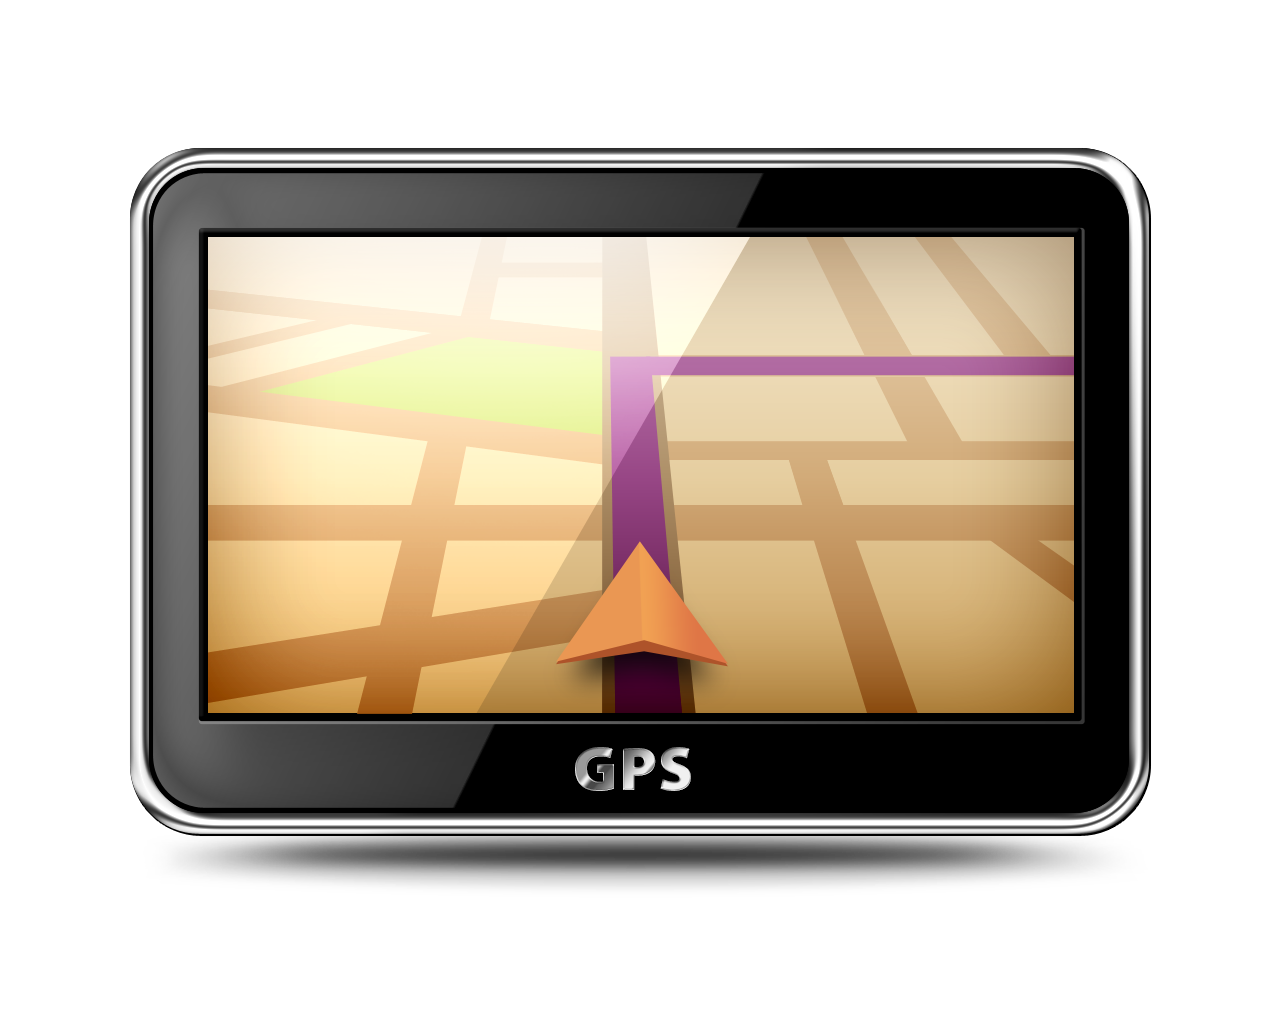 GPS device graphic image